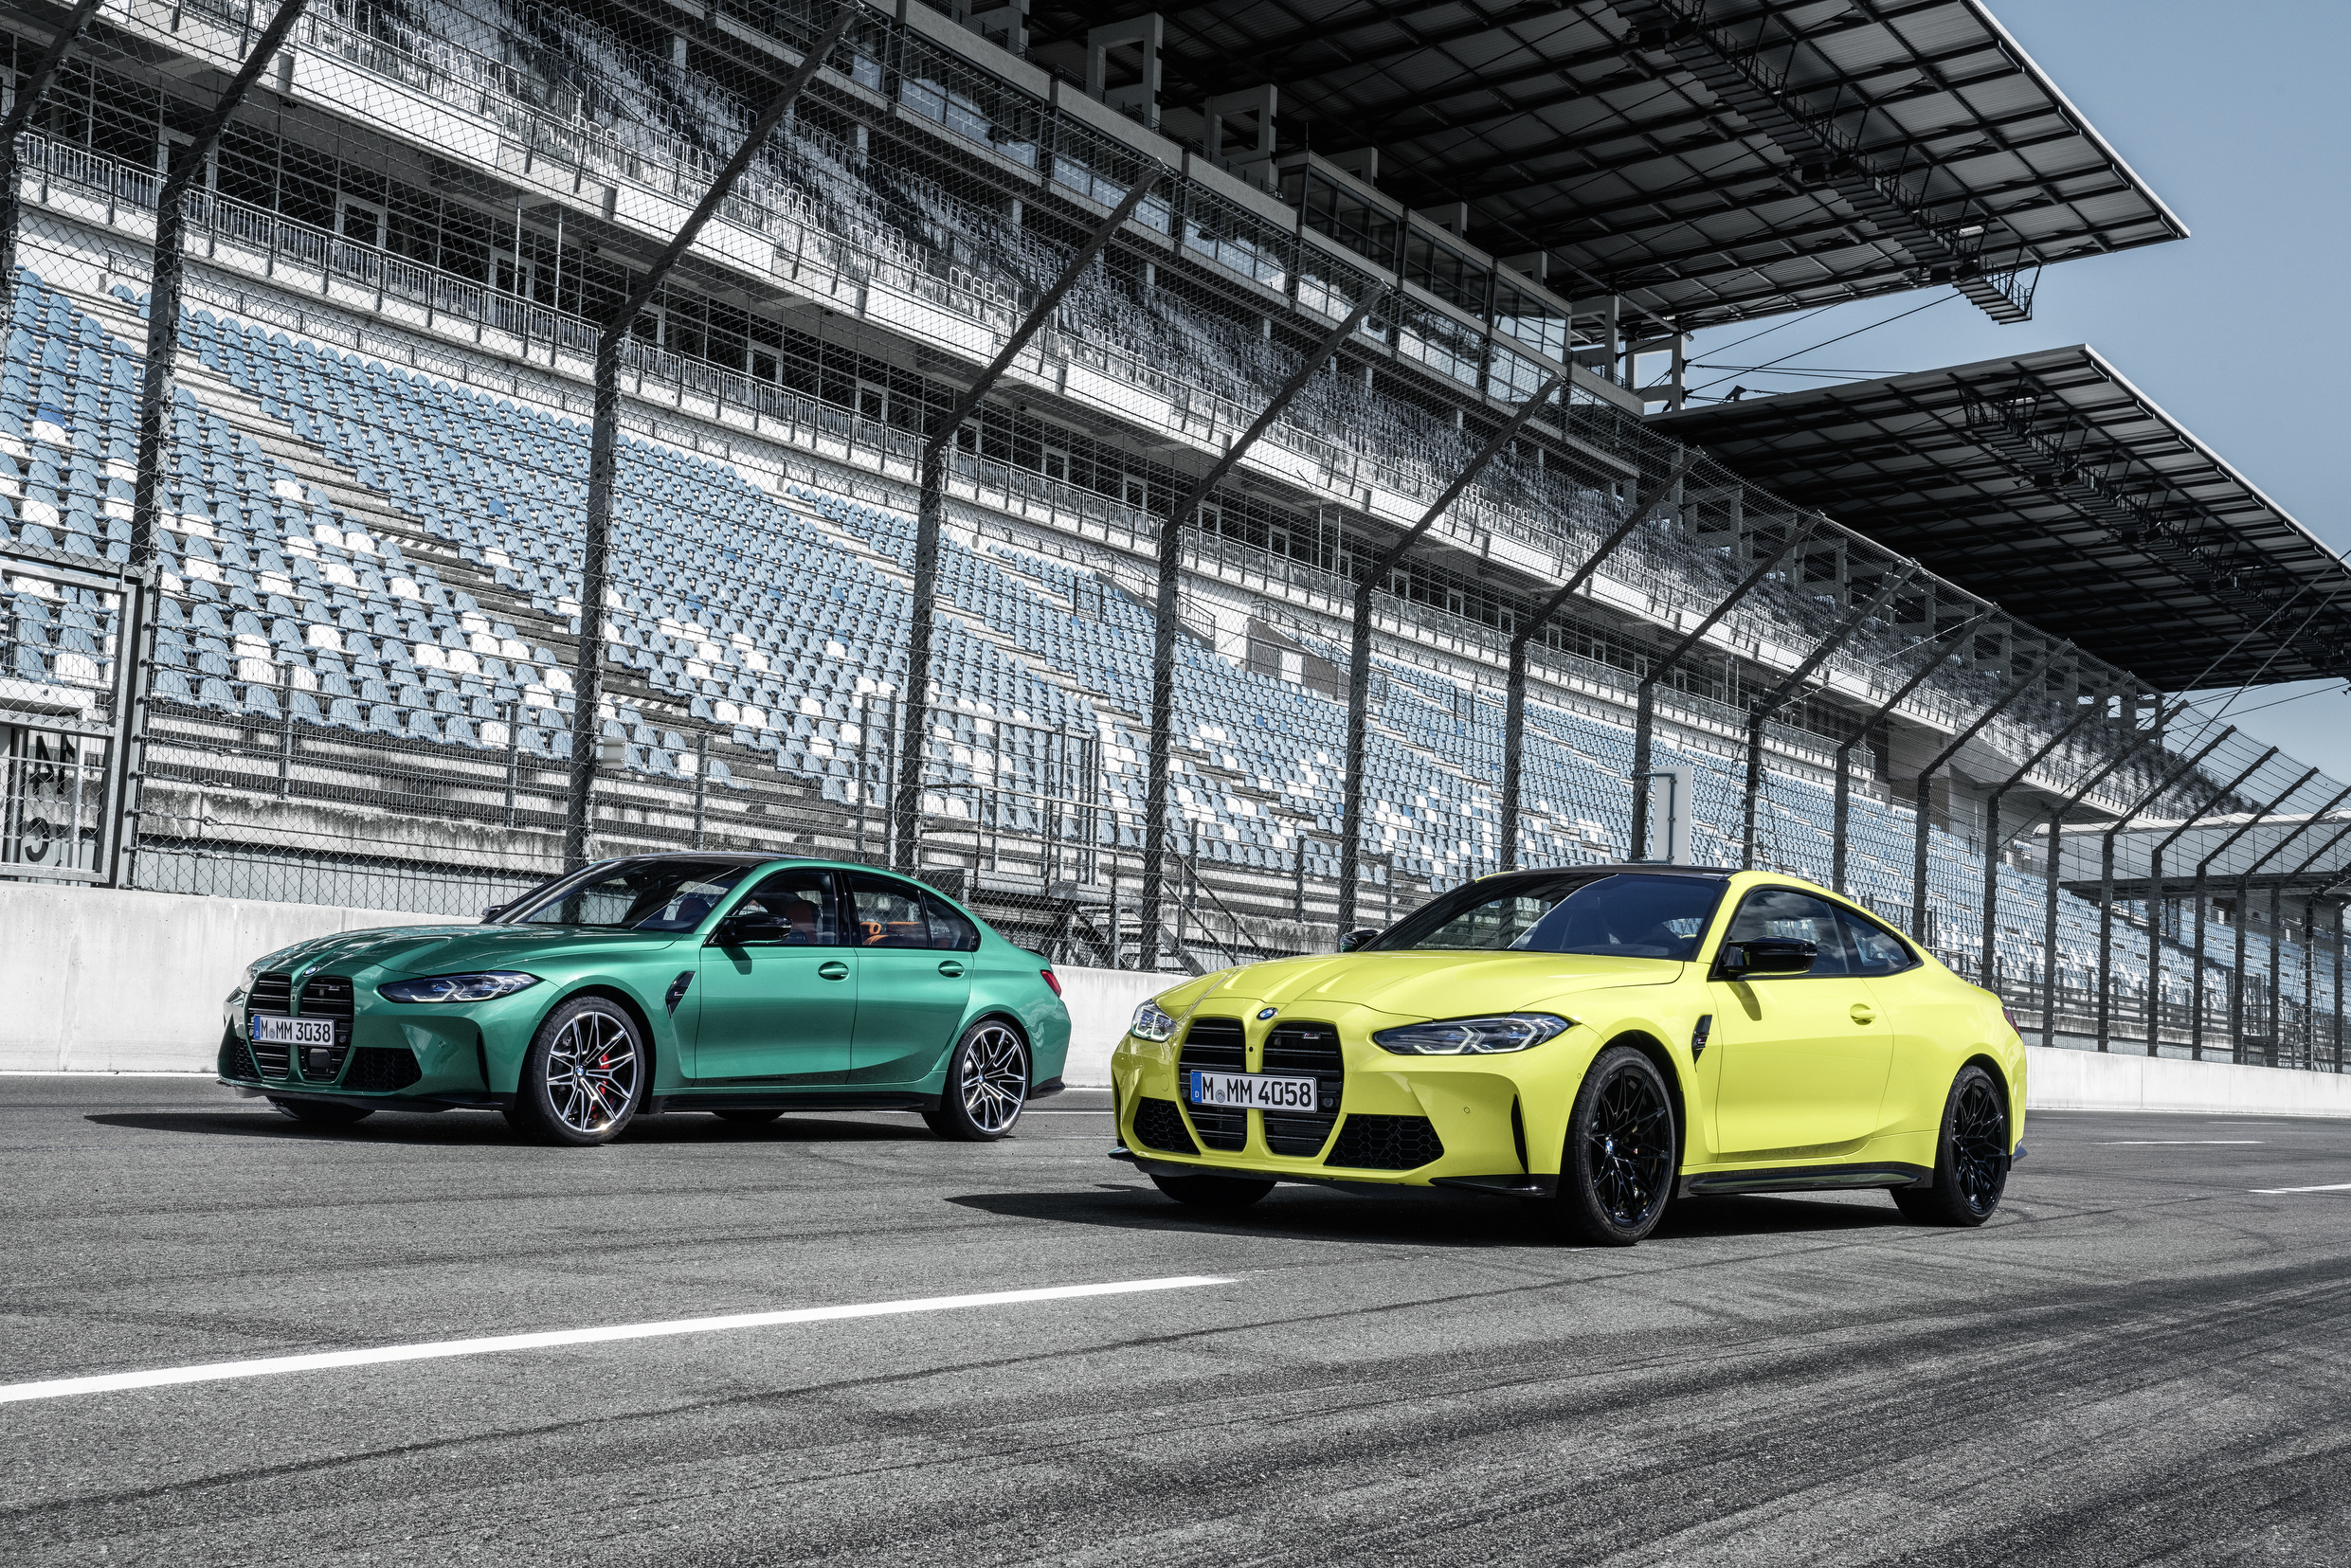 2021 BMW M4 Coupe and M3 Sedan: the new dynamics in design.